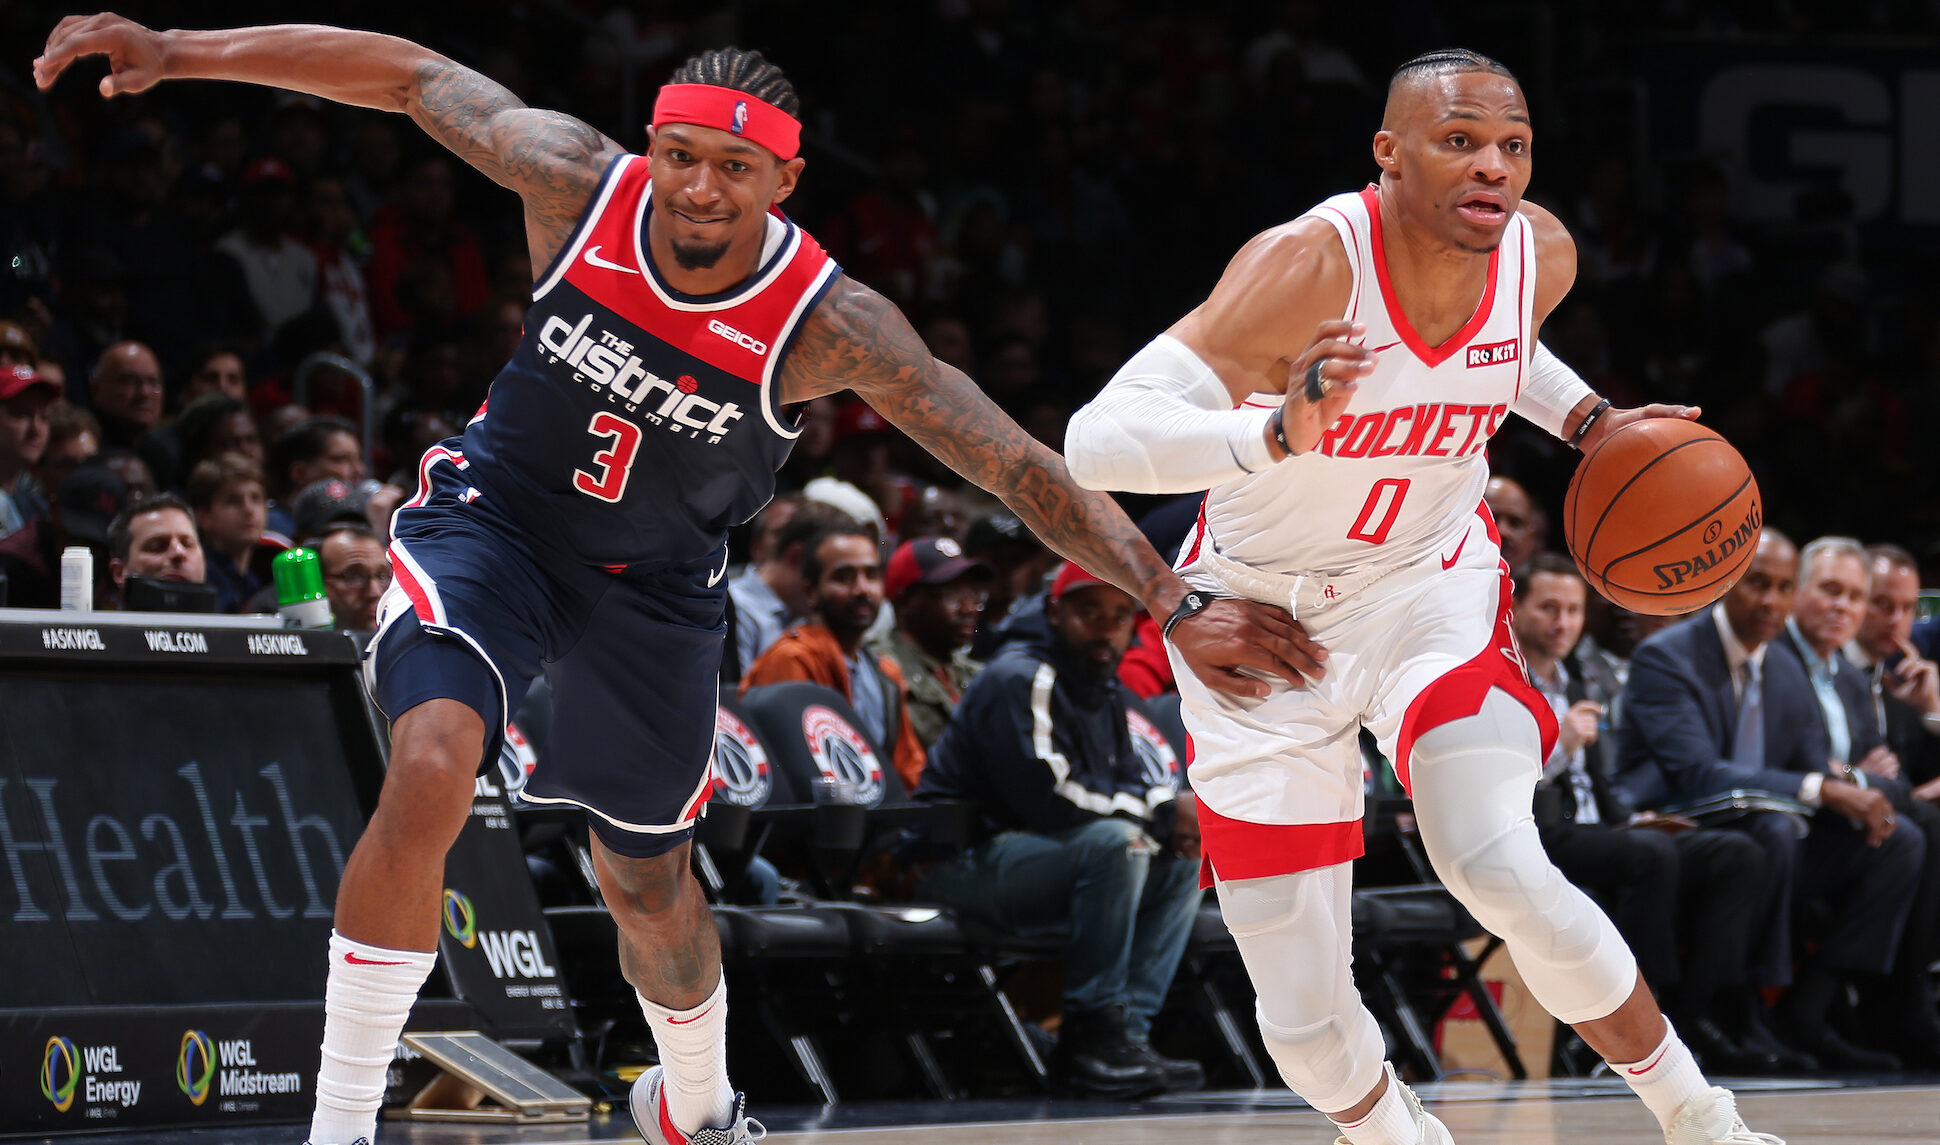 Beal excited for 'spark' Westbrook will bring to Wizards | NBA.com